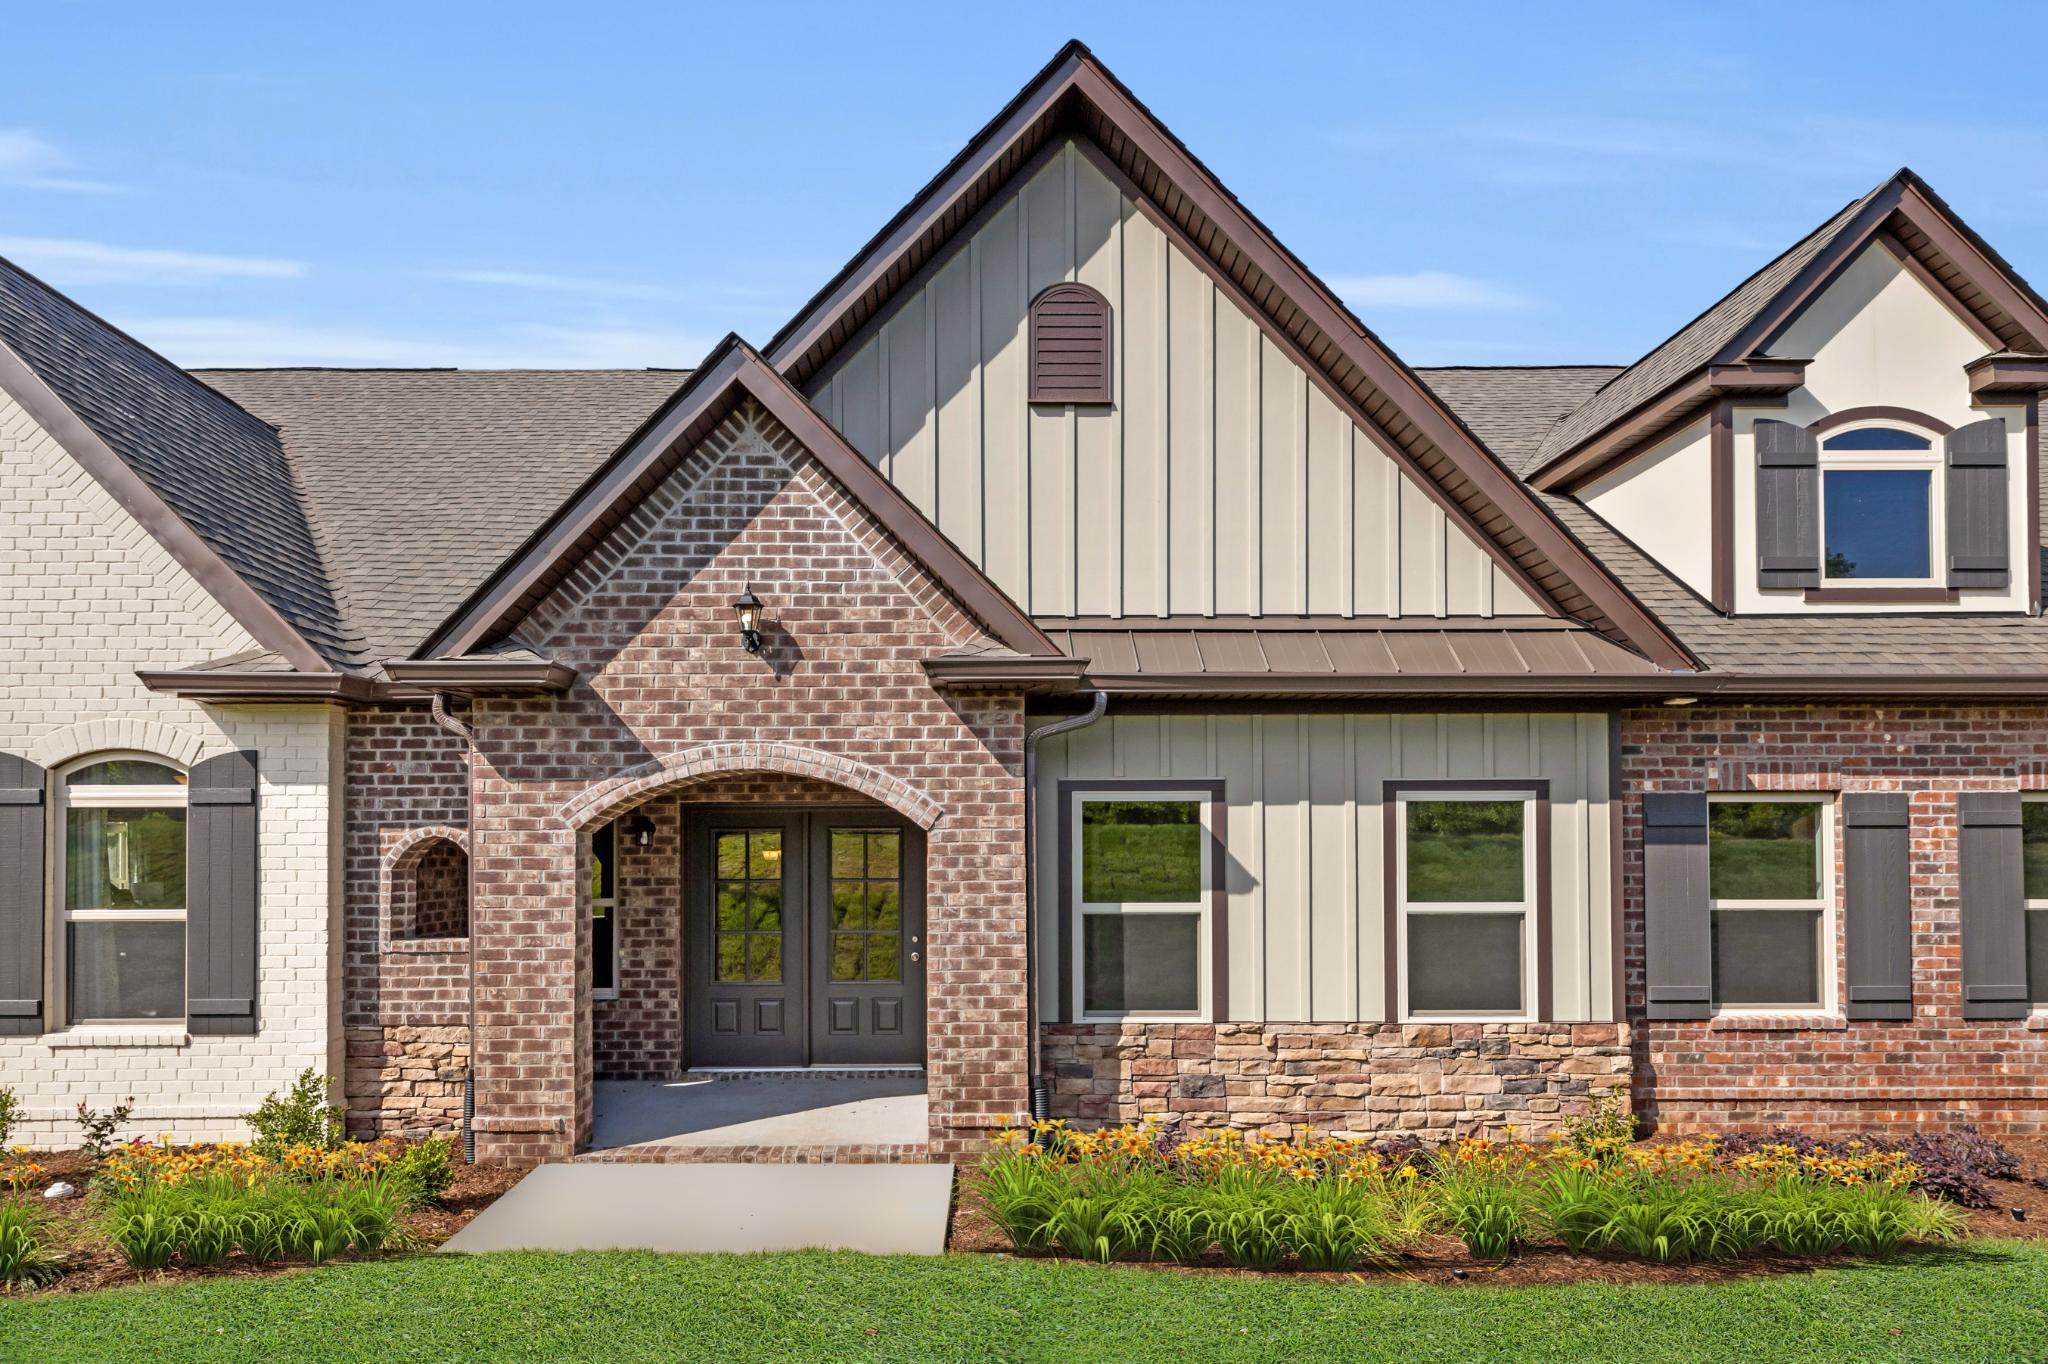 'The Cottages at Brow Wood' by Goodall Homes in Chattanooga